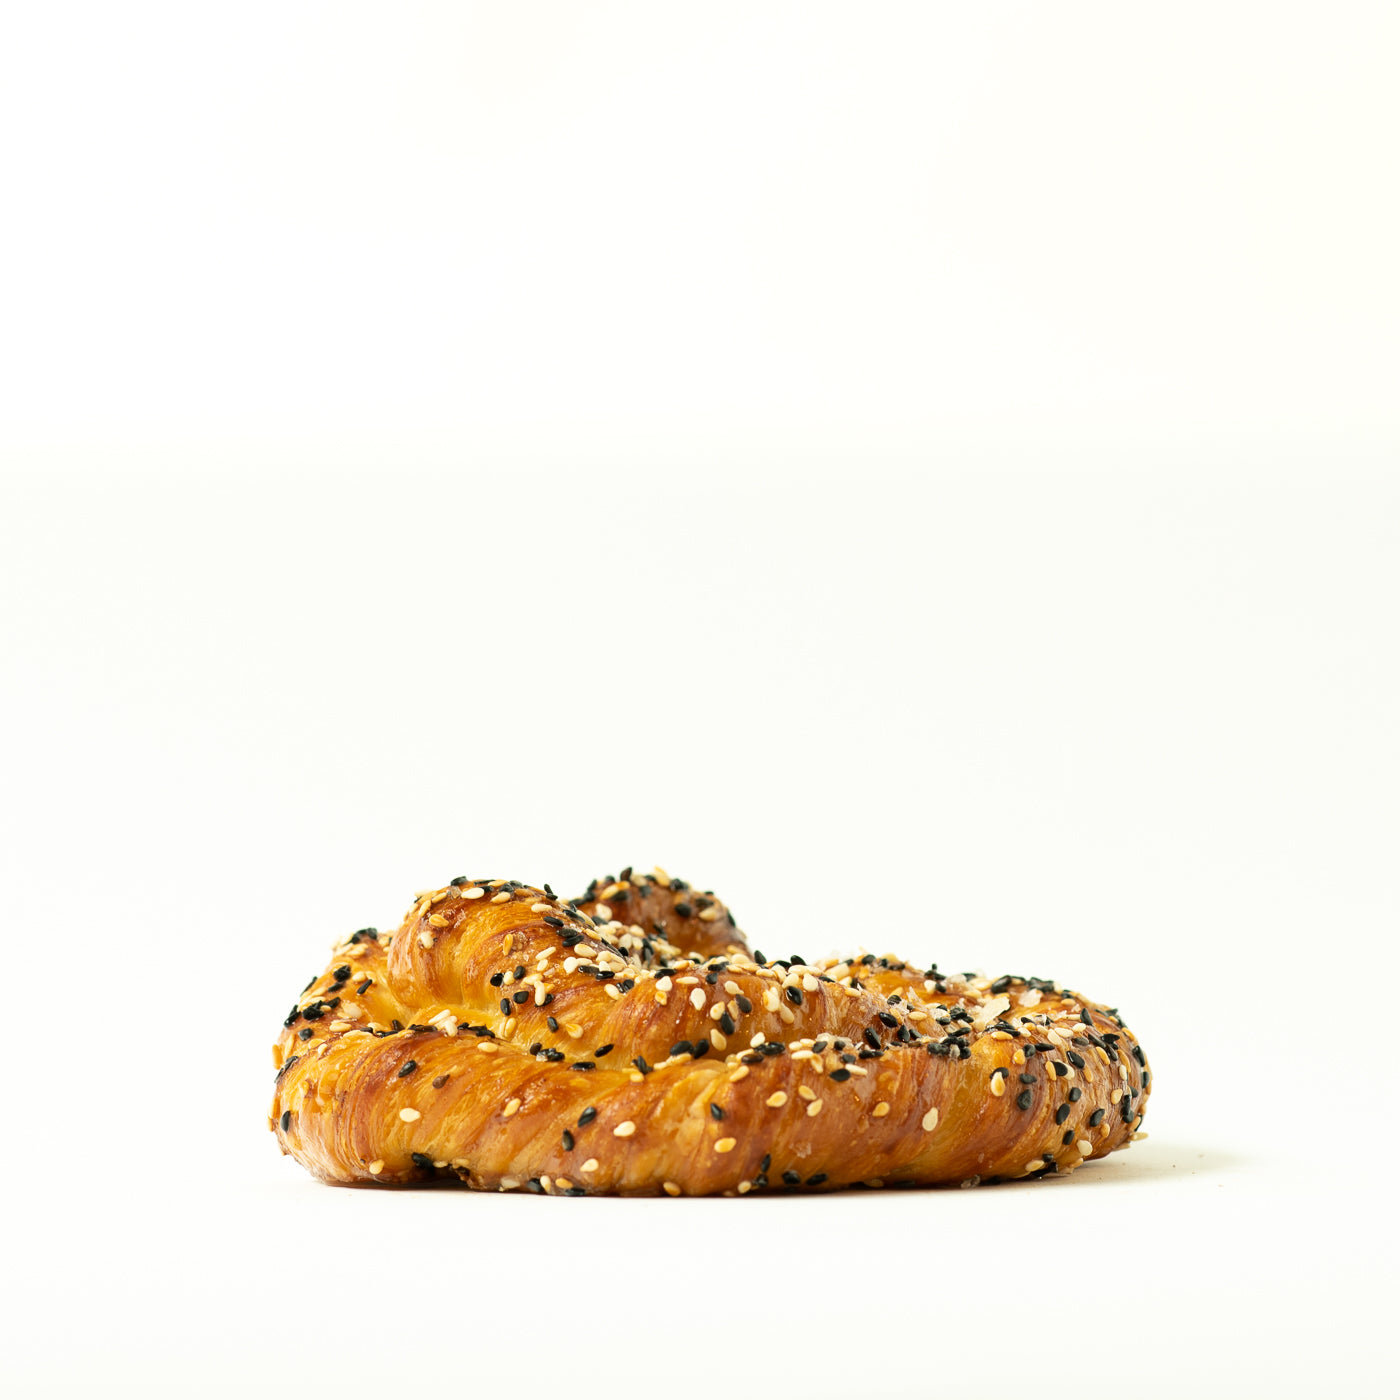 Honey Sesame and Sea salt